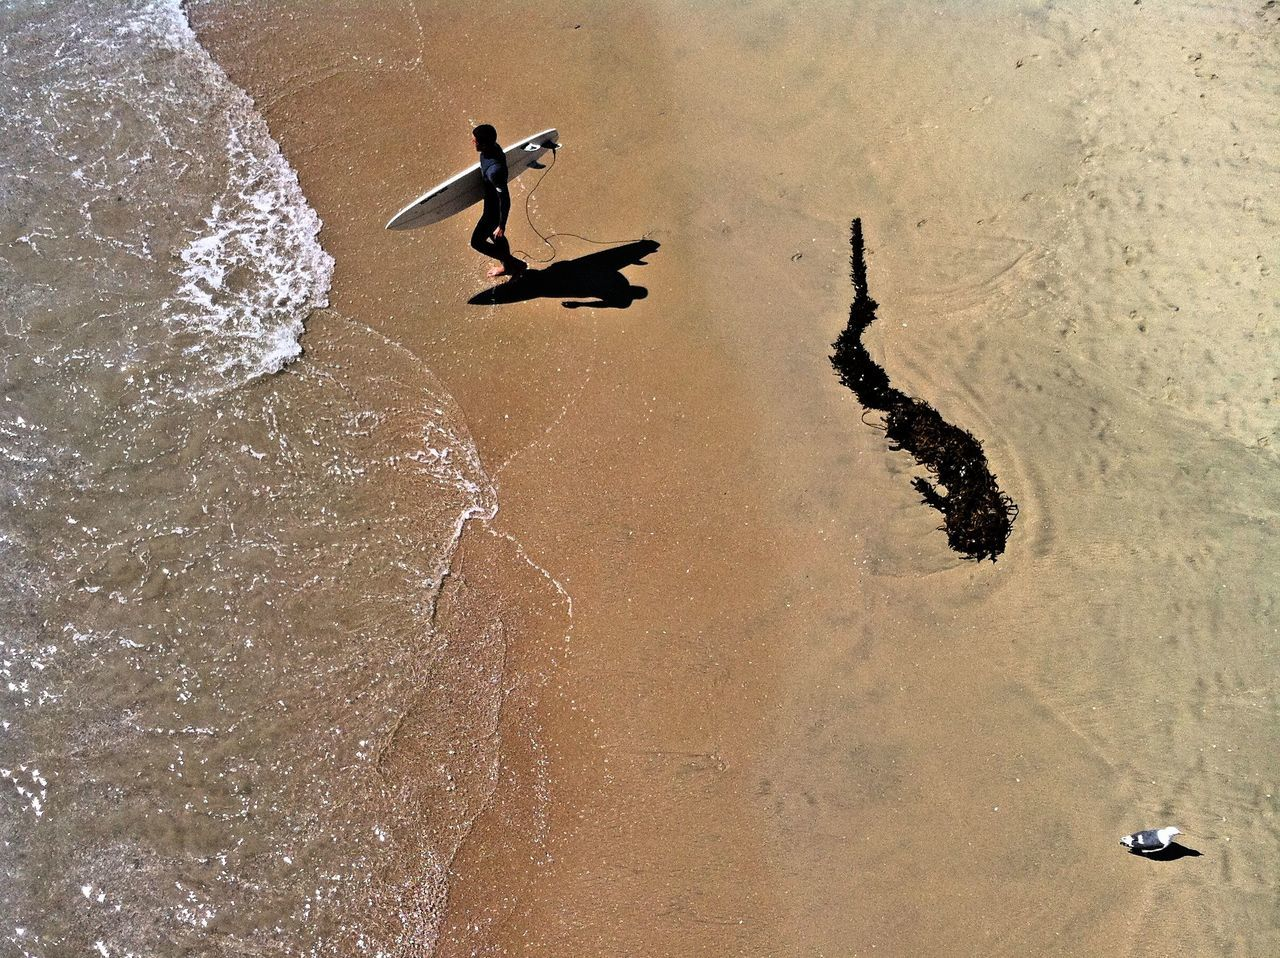 High angle view of a man carrying surfboard on beach